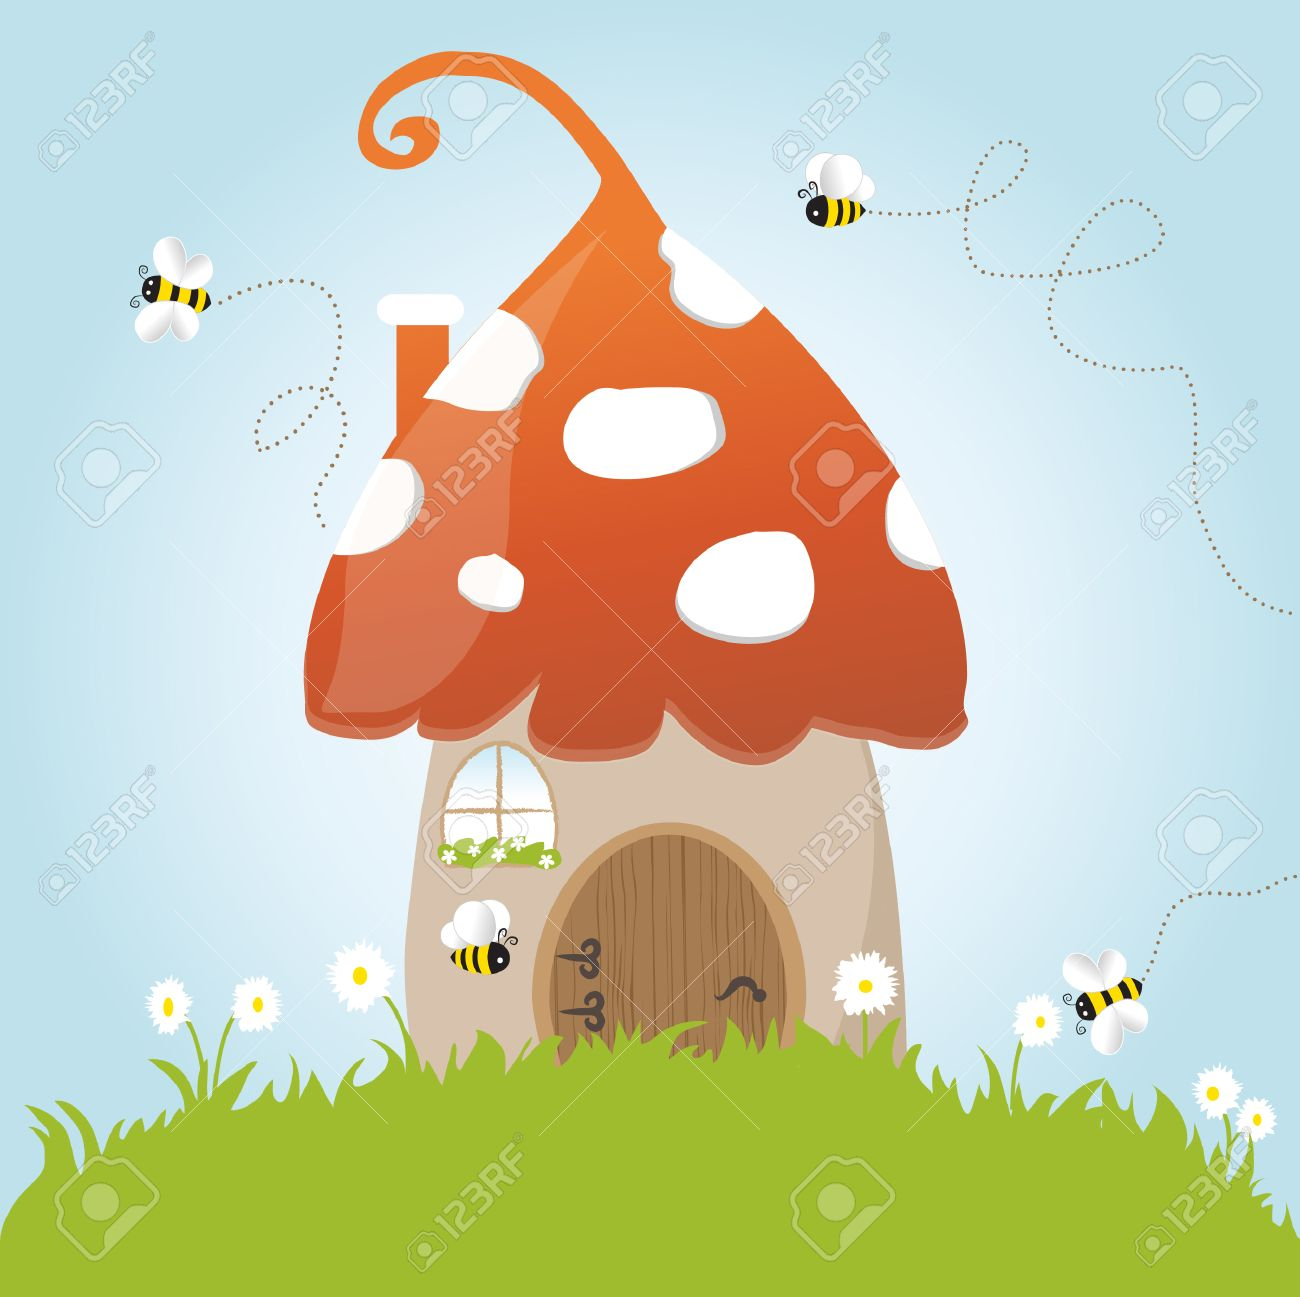 Spring Mushroom Flower Grass Green Door Blue Sky Vector